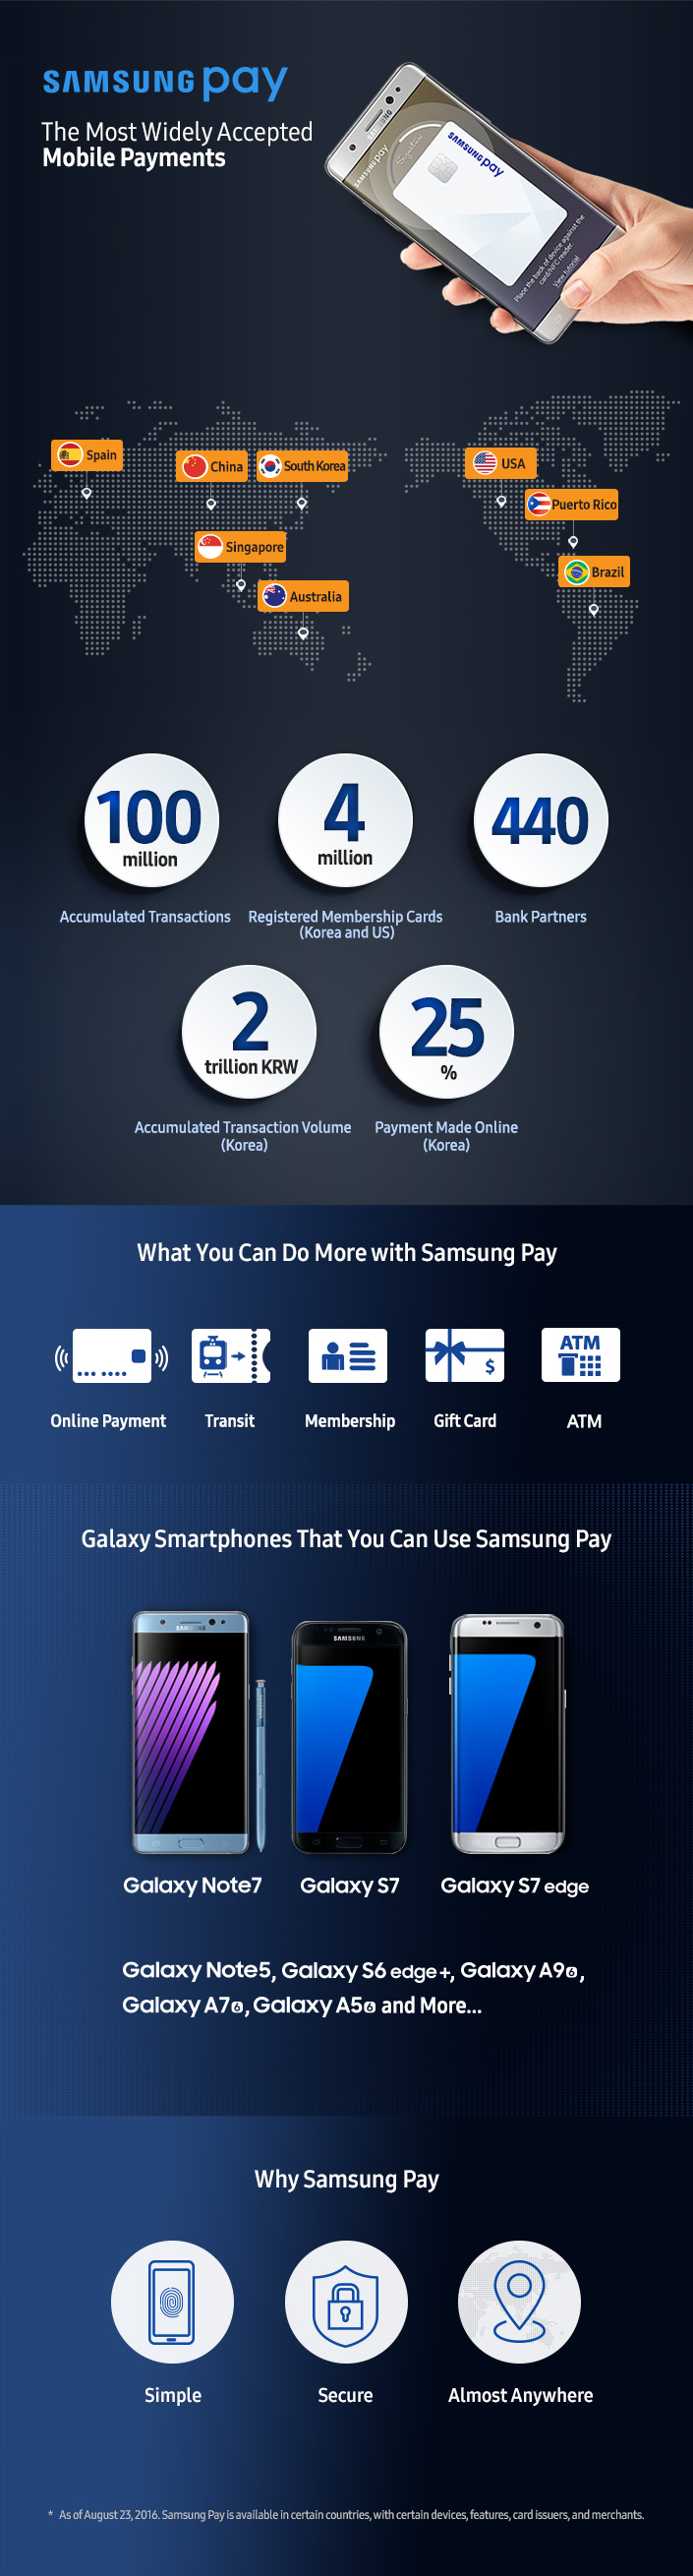 Samsung Pay Infographic_Main_1